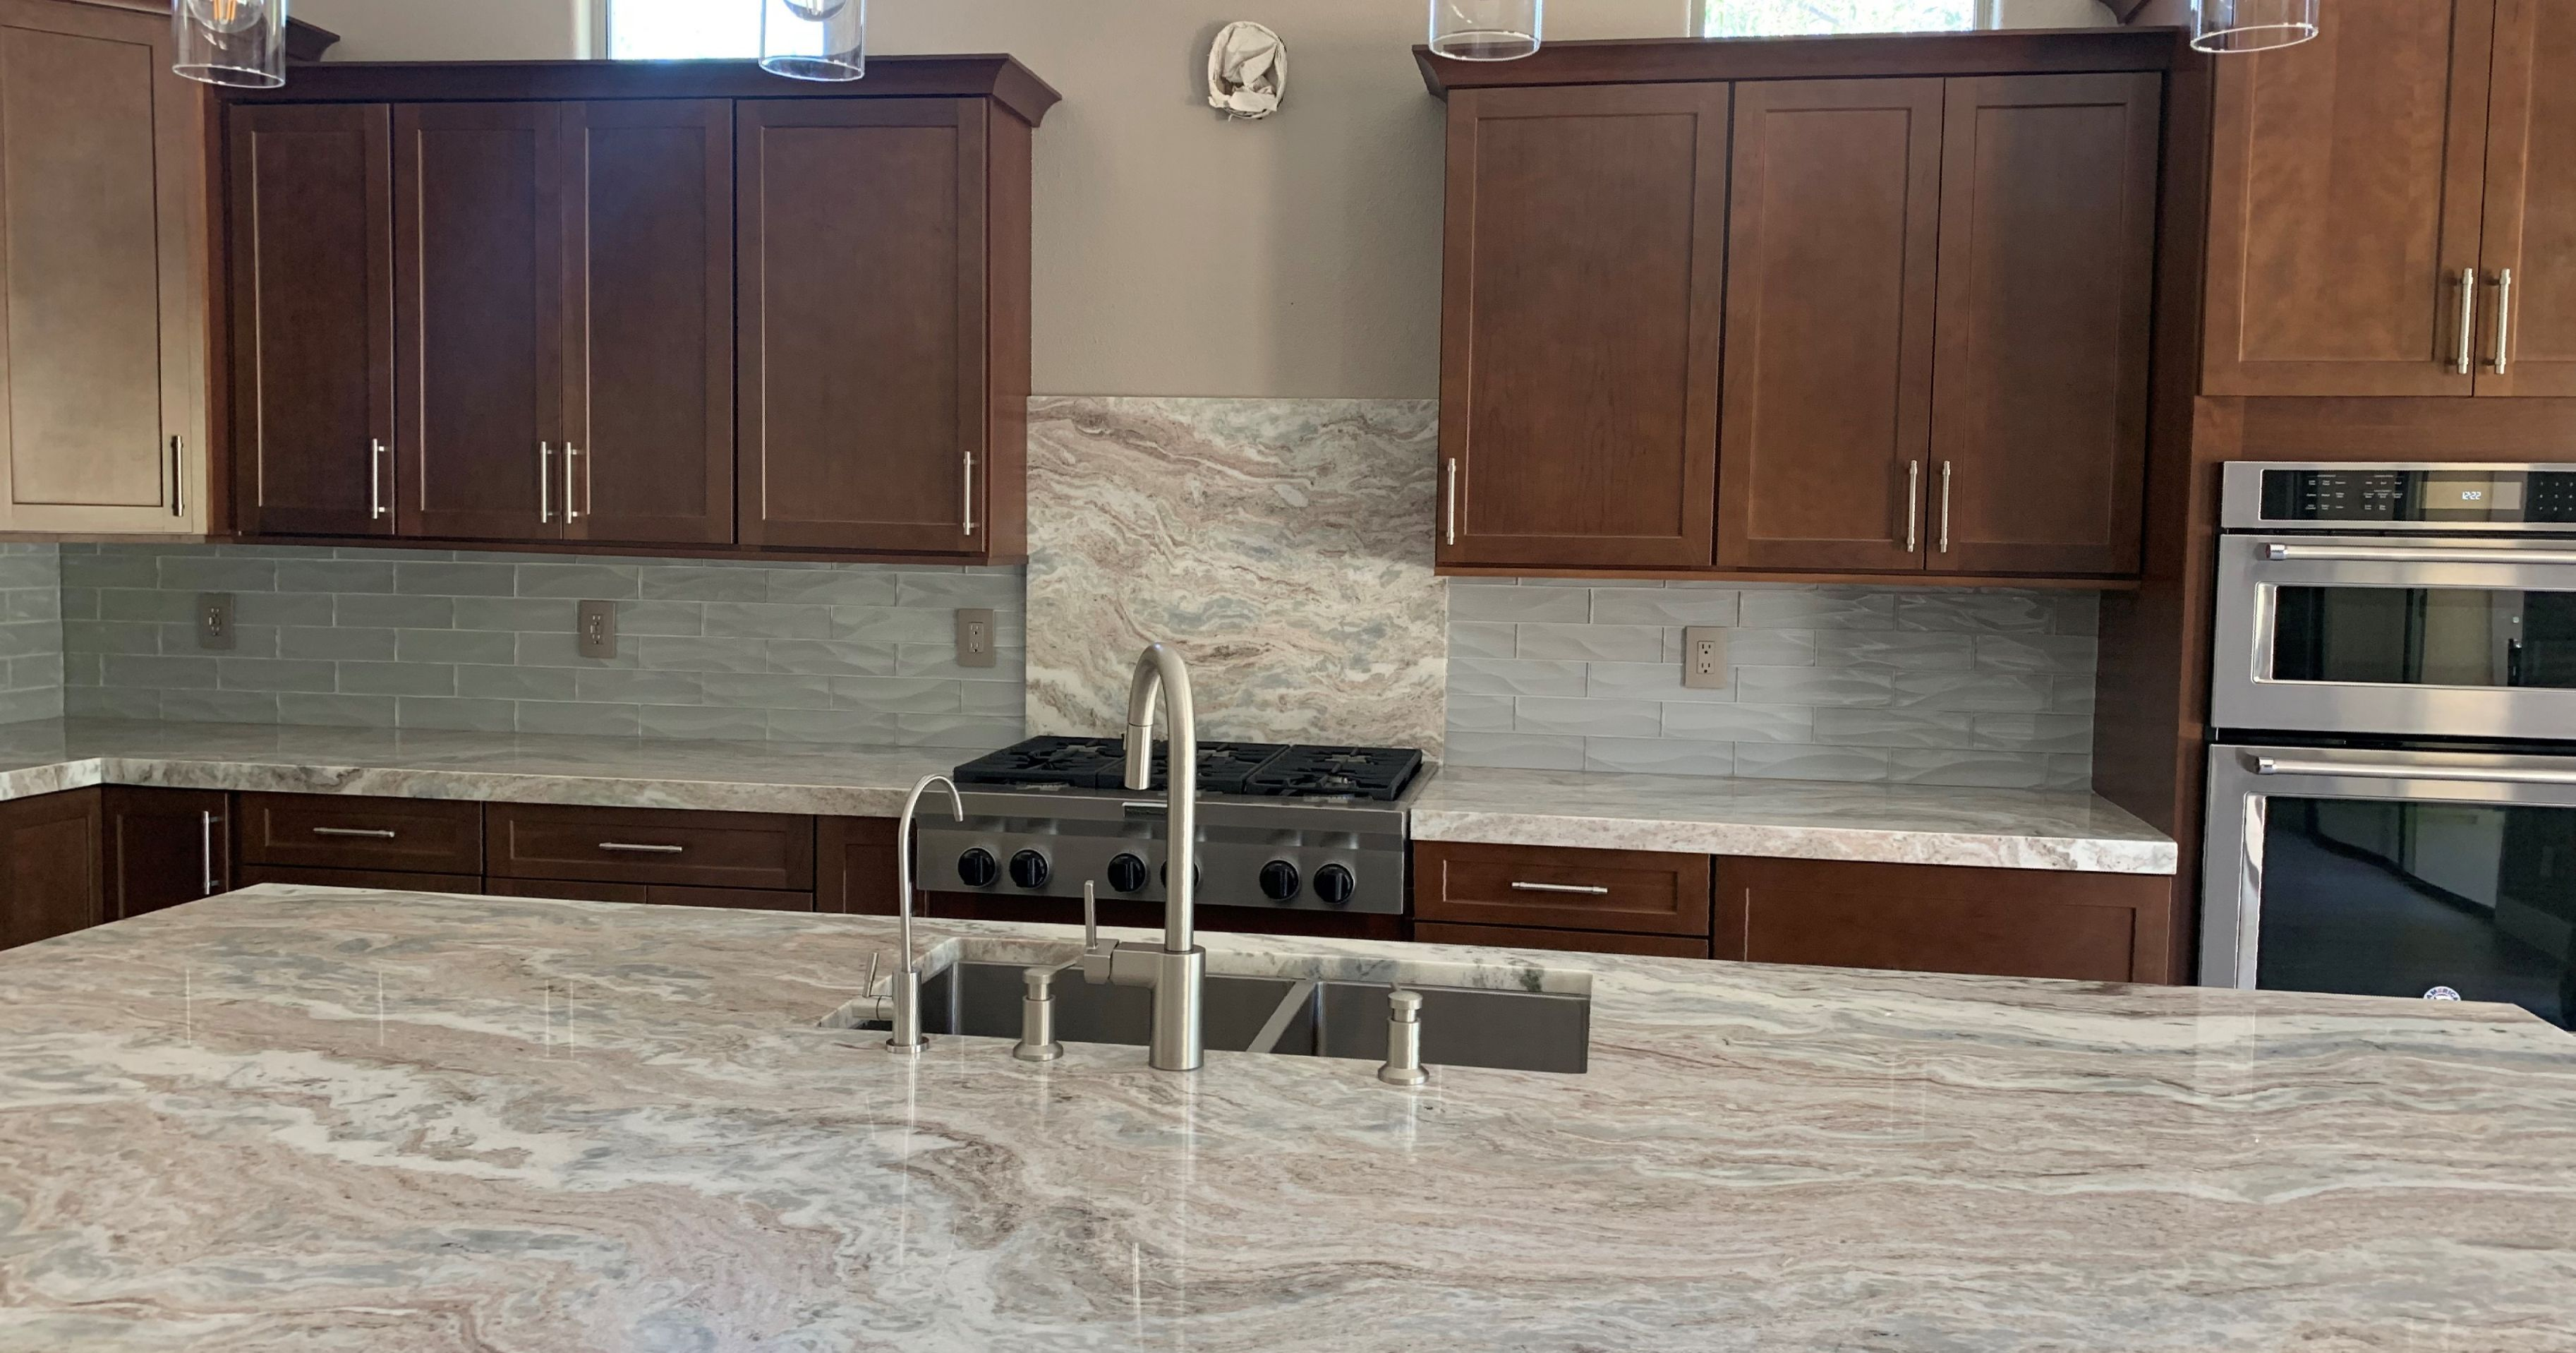 - This Is A Custom Build Home In Las Vegas, NV Used Fantasy Brown Satin  #marble & Dunes Denim 3x12 Wave In The Kitchen. F… (With Images) Kitchen  Design, Custom Built Homes,